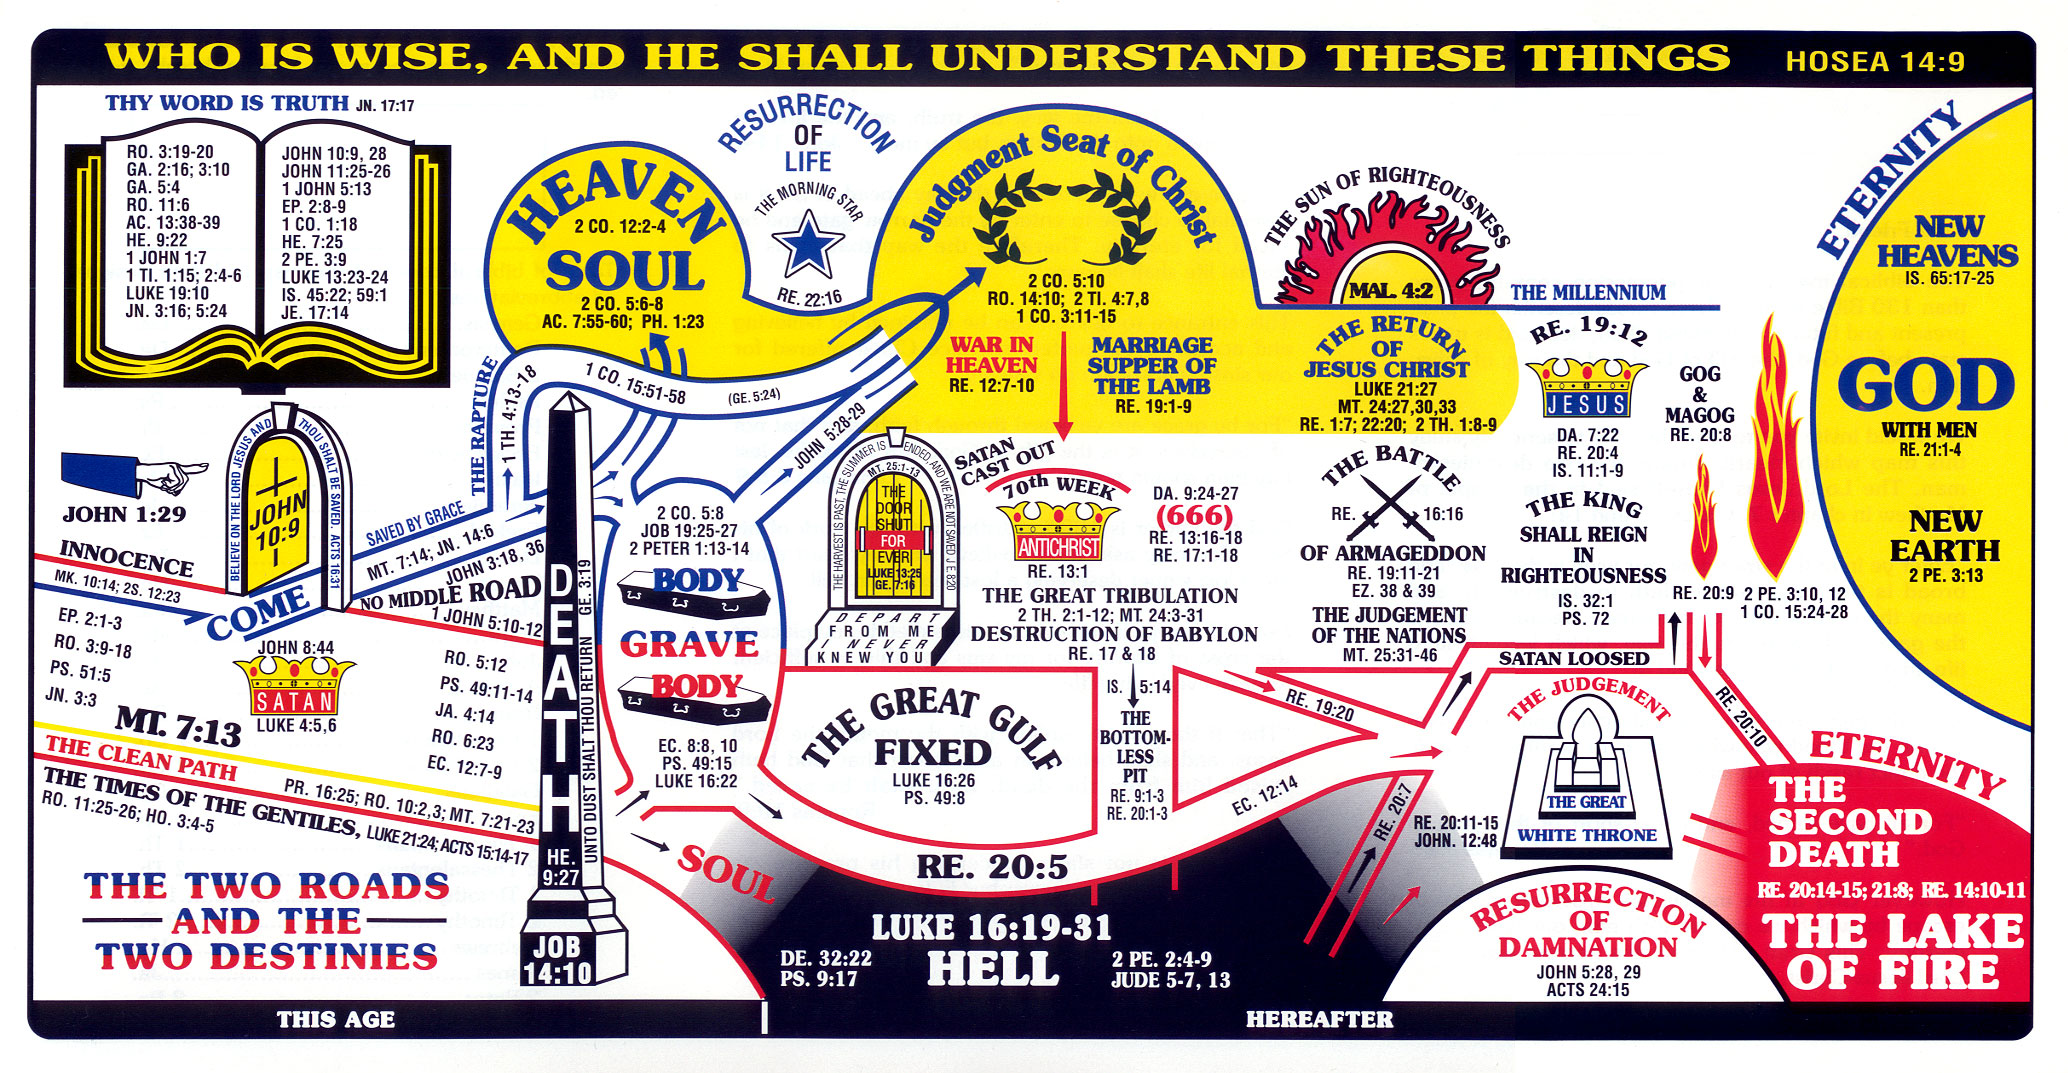 an analysis of stanley milgrams theory of the heavens gate Cults: public perceptions vs research print email cults: public stanley milgram also conducted experiments that are helpful in in recent years the violence of aum the waco davidians and the suicides of the solar temple and heaven's gate offer further proof of the seemingly irrational.